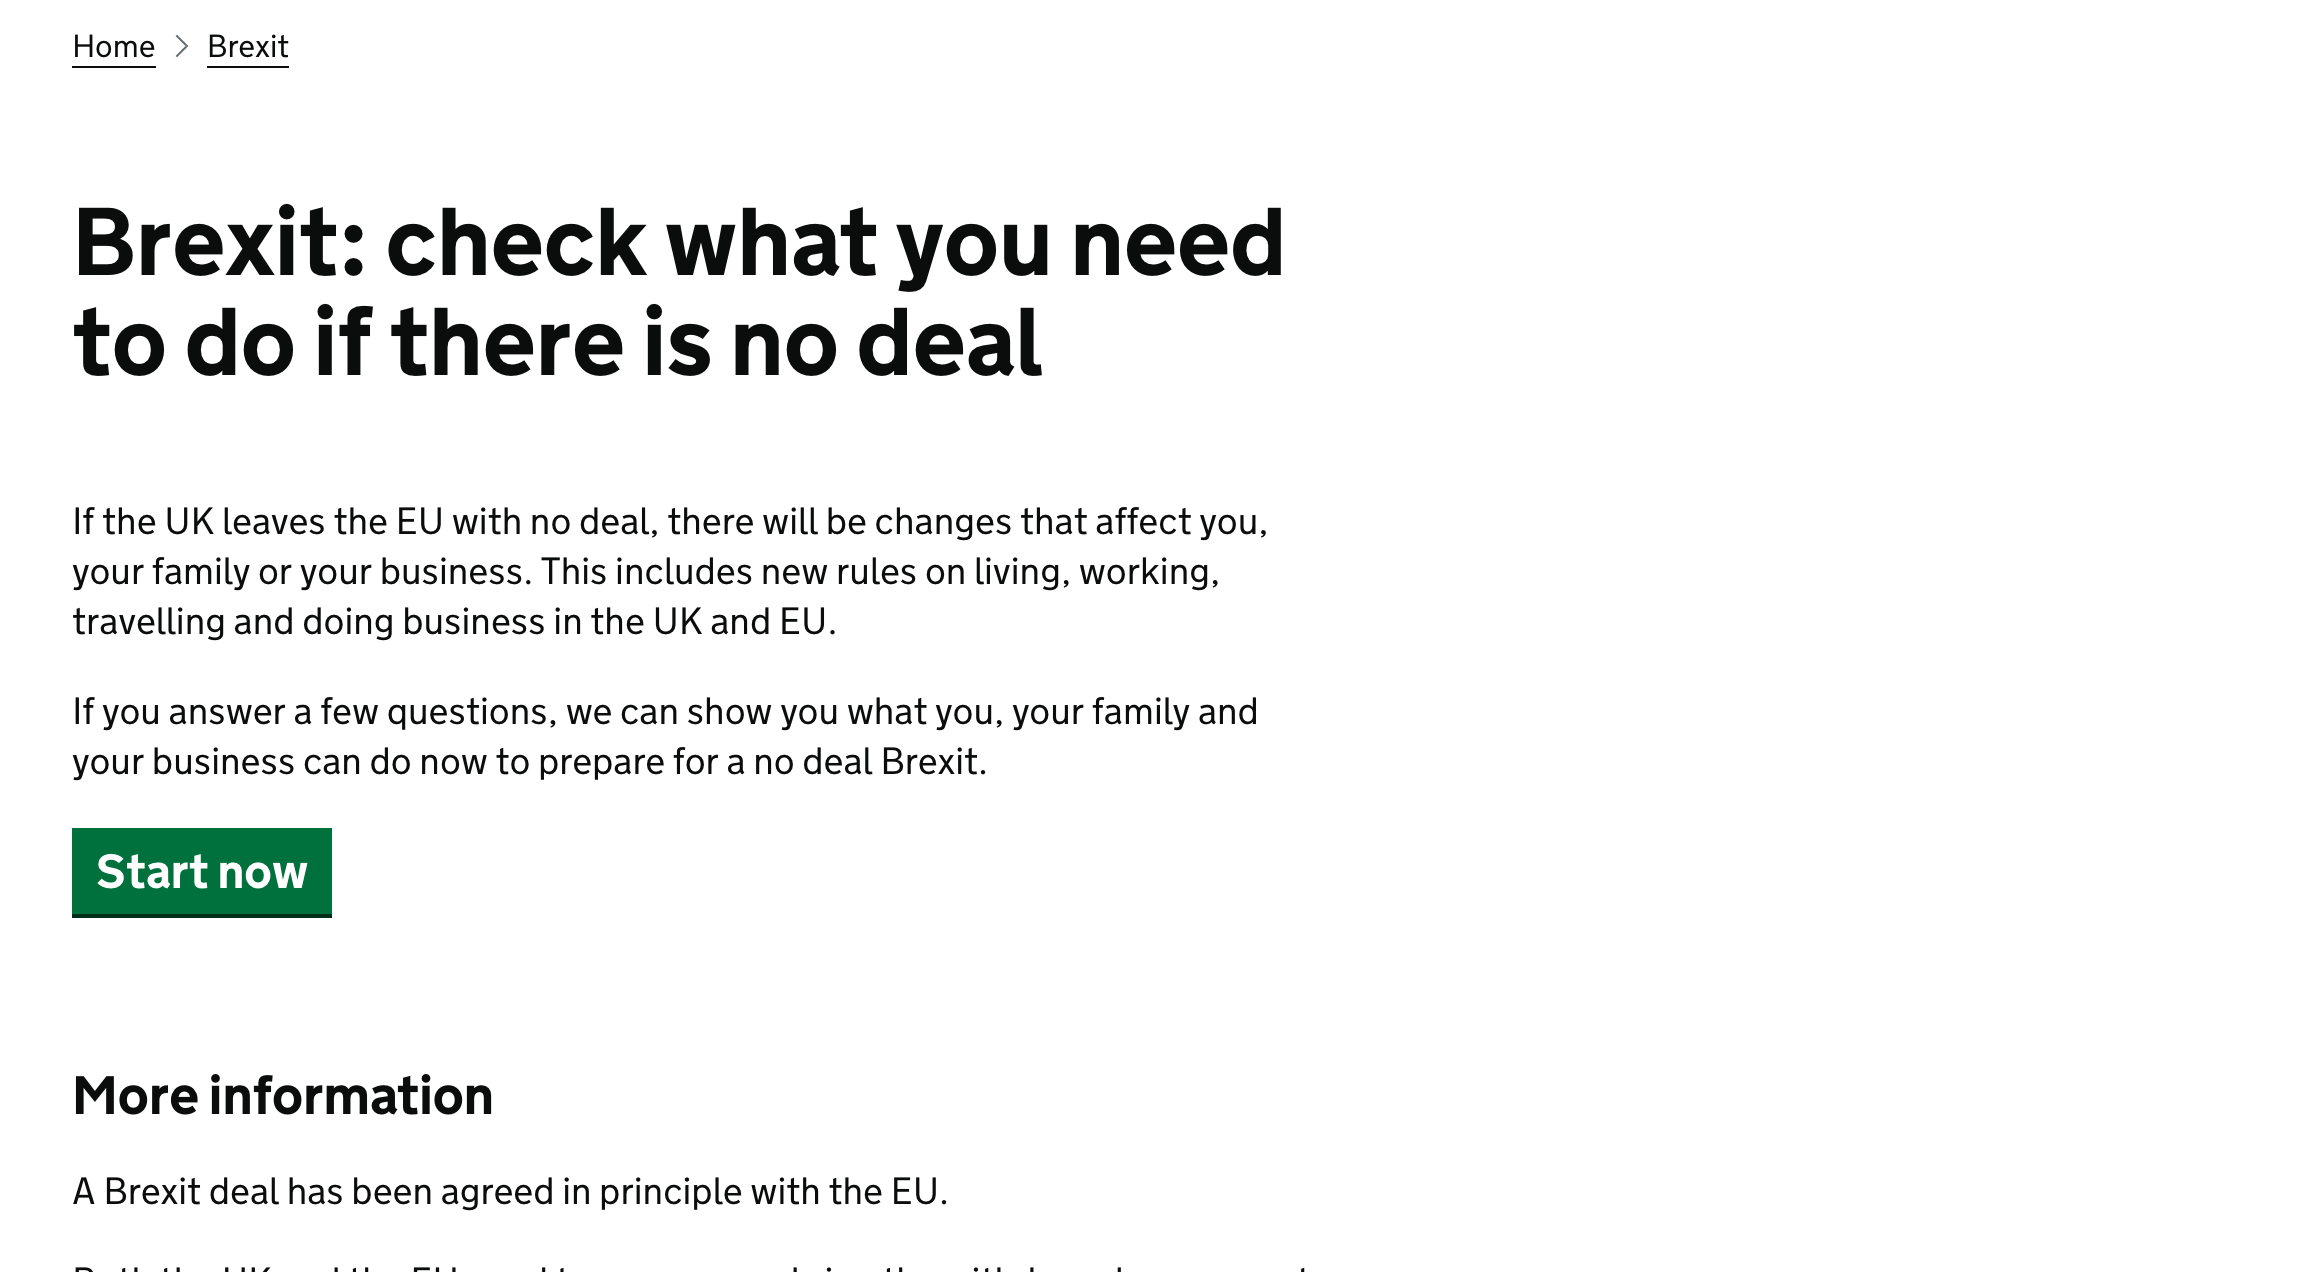 Screenshot_2020-01-06 Brexit check what you need to do if there is no deal